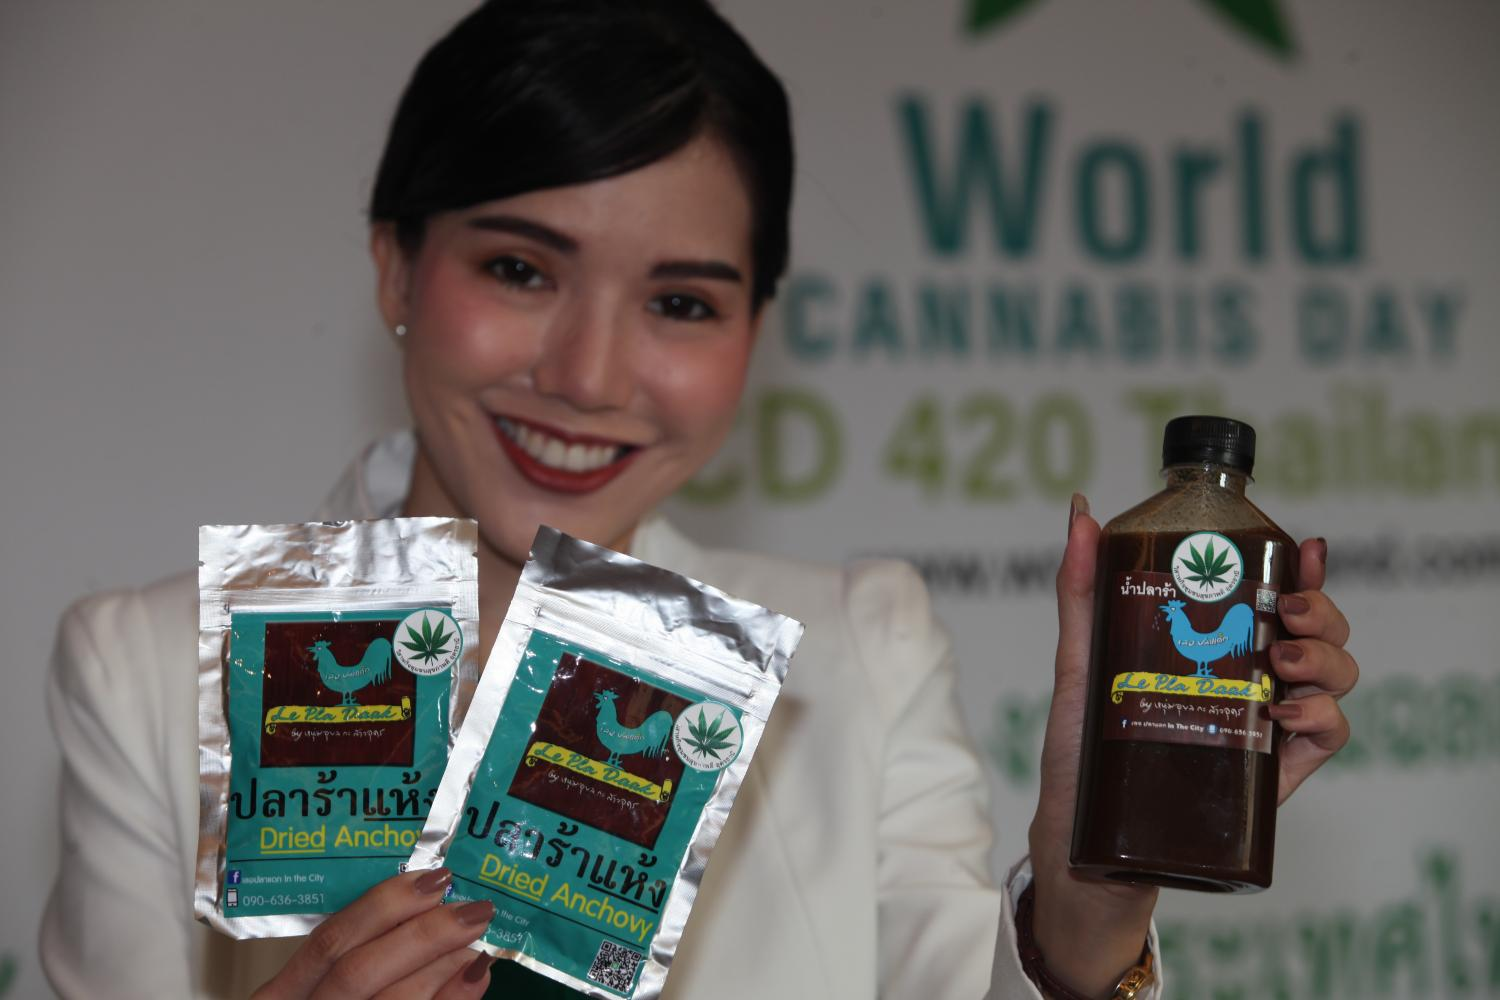 A presenter shows off dried anchovy and fermented fish sauce products that use cannabis as an ingredient at a press conference at an event to mark World Cannabis Day and the 420 days that have passed since medical cannabis use was legalised in the country.  Apichart Jinakul